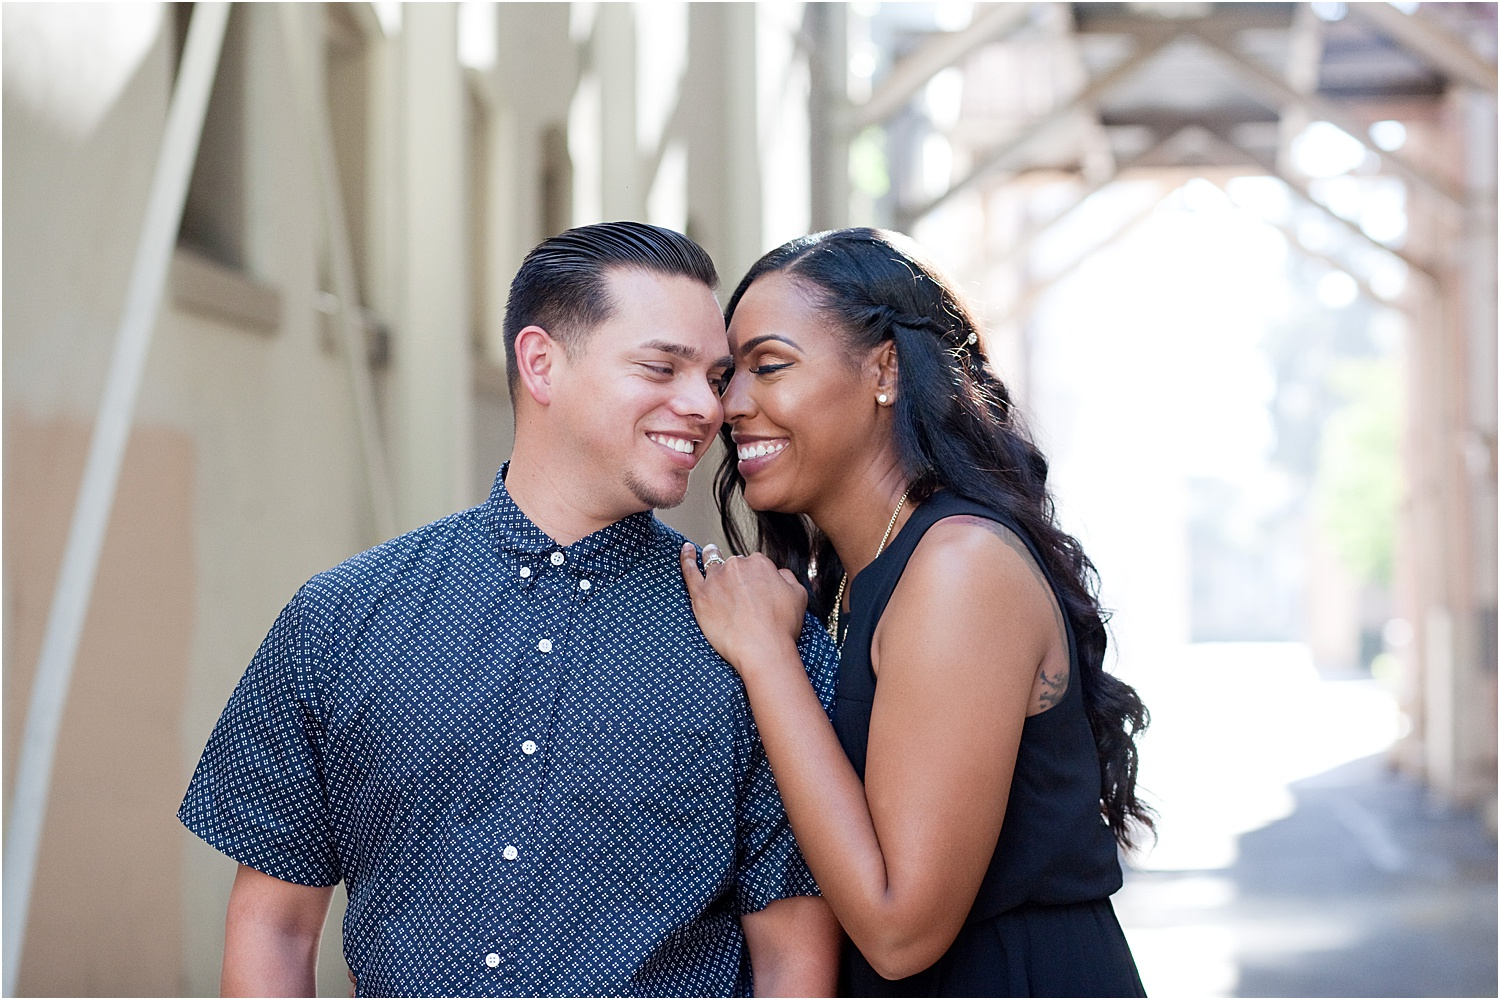 17 - Guide to the Best Poses for Engagement Photos